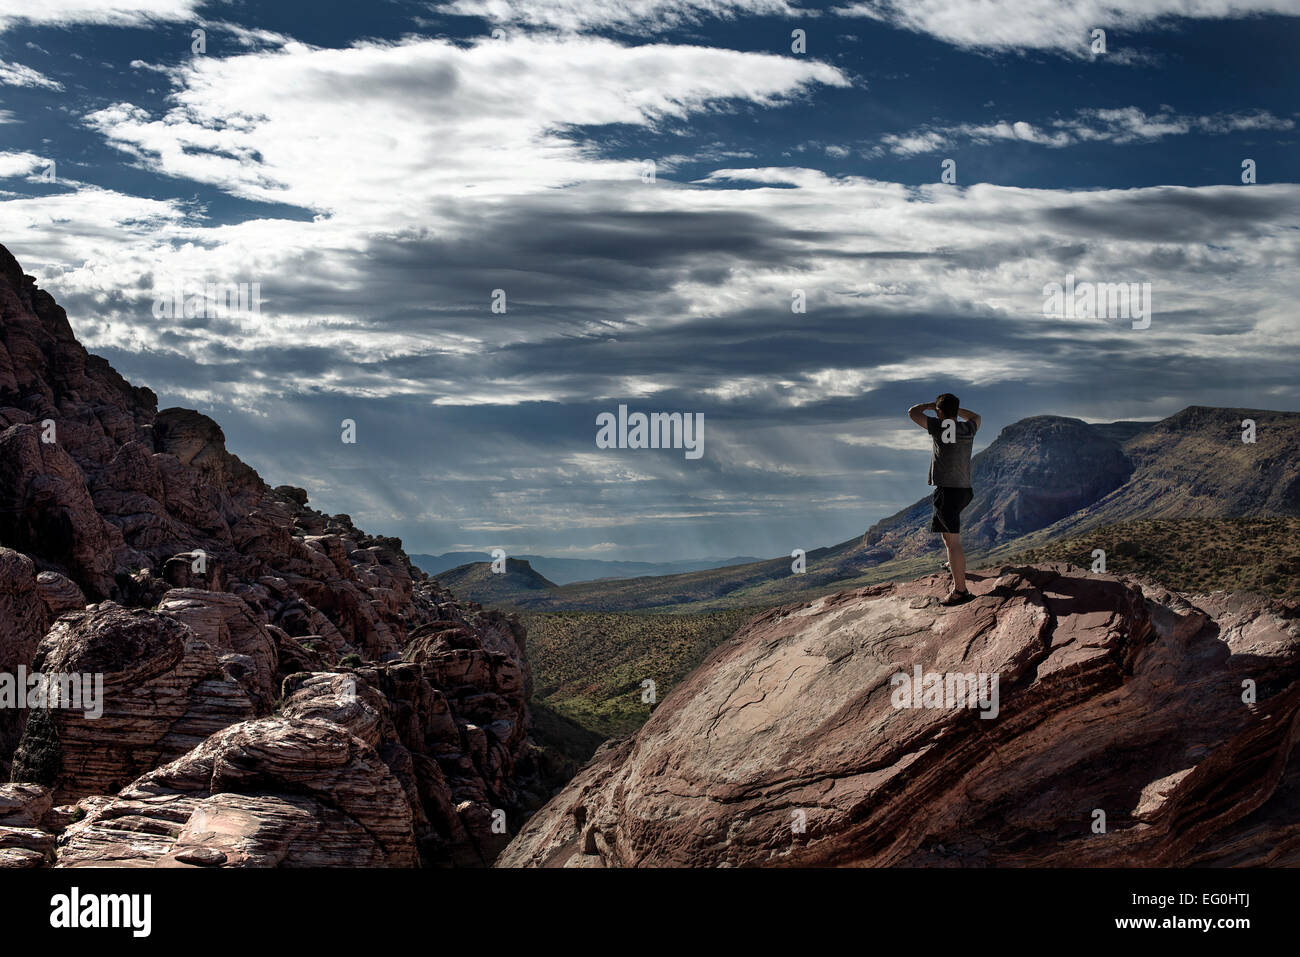 Man looking at distant landscape - Stock Image